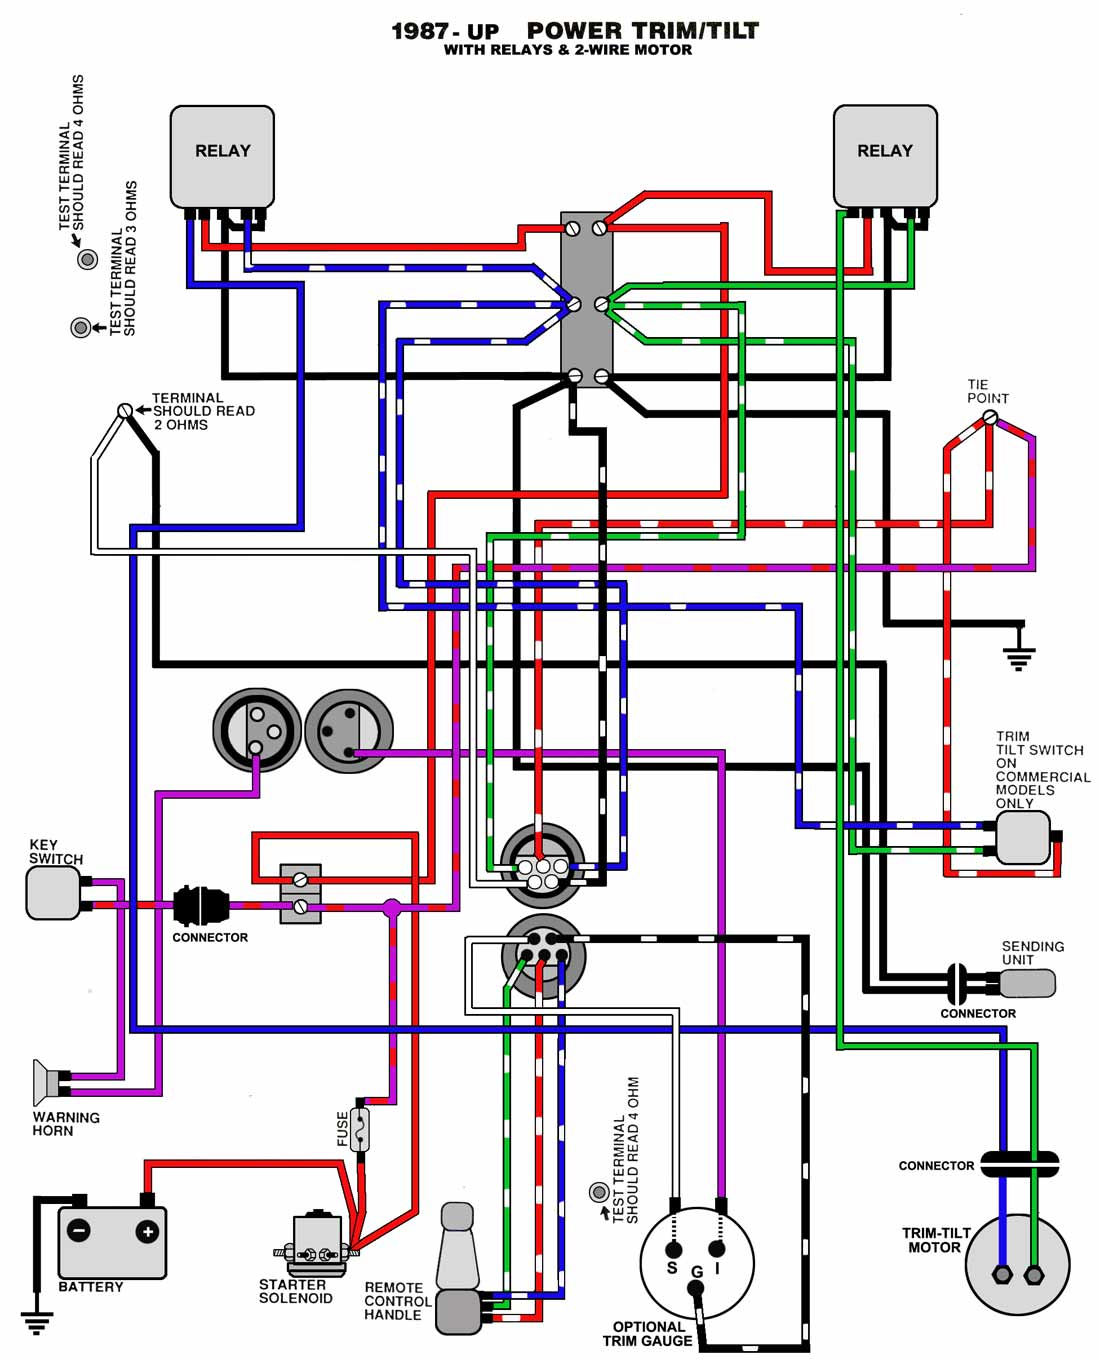 mercury outboard power trim wiring diagram 2000 honda accord audio common motor and tilt system diagrams 1987 up